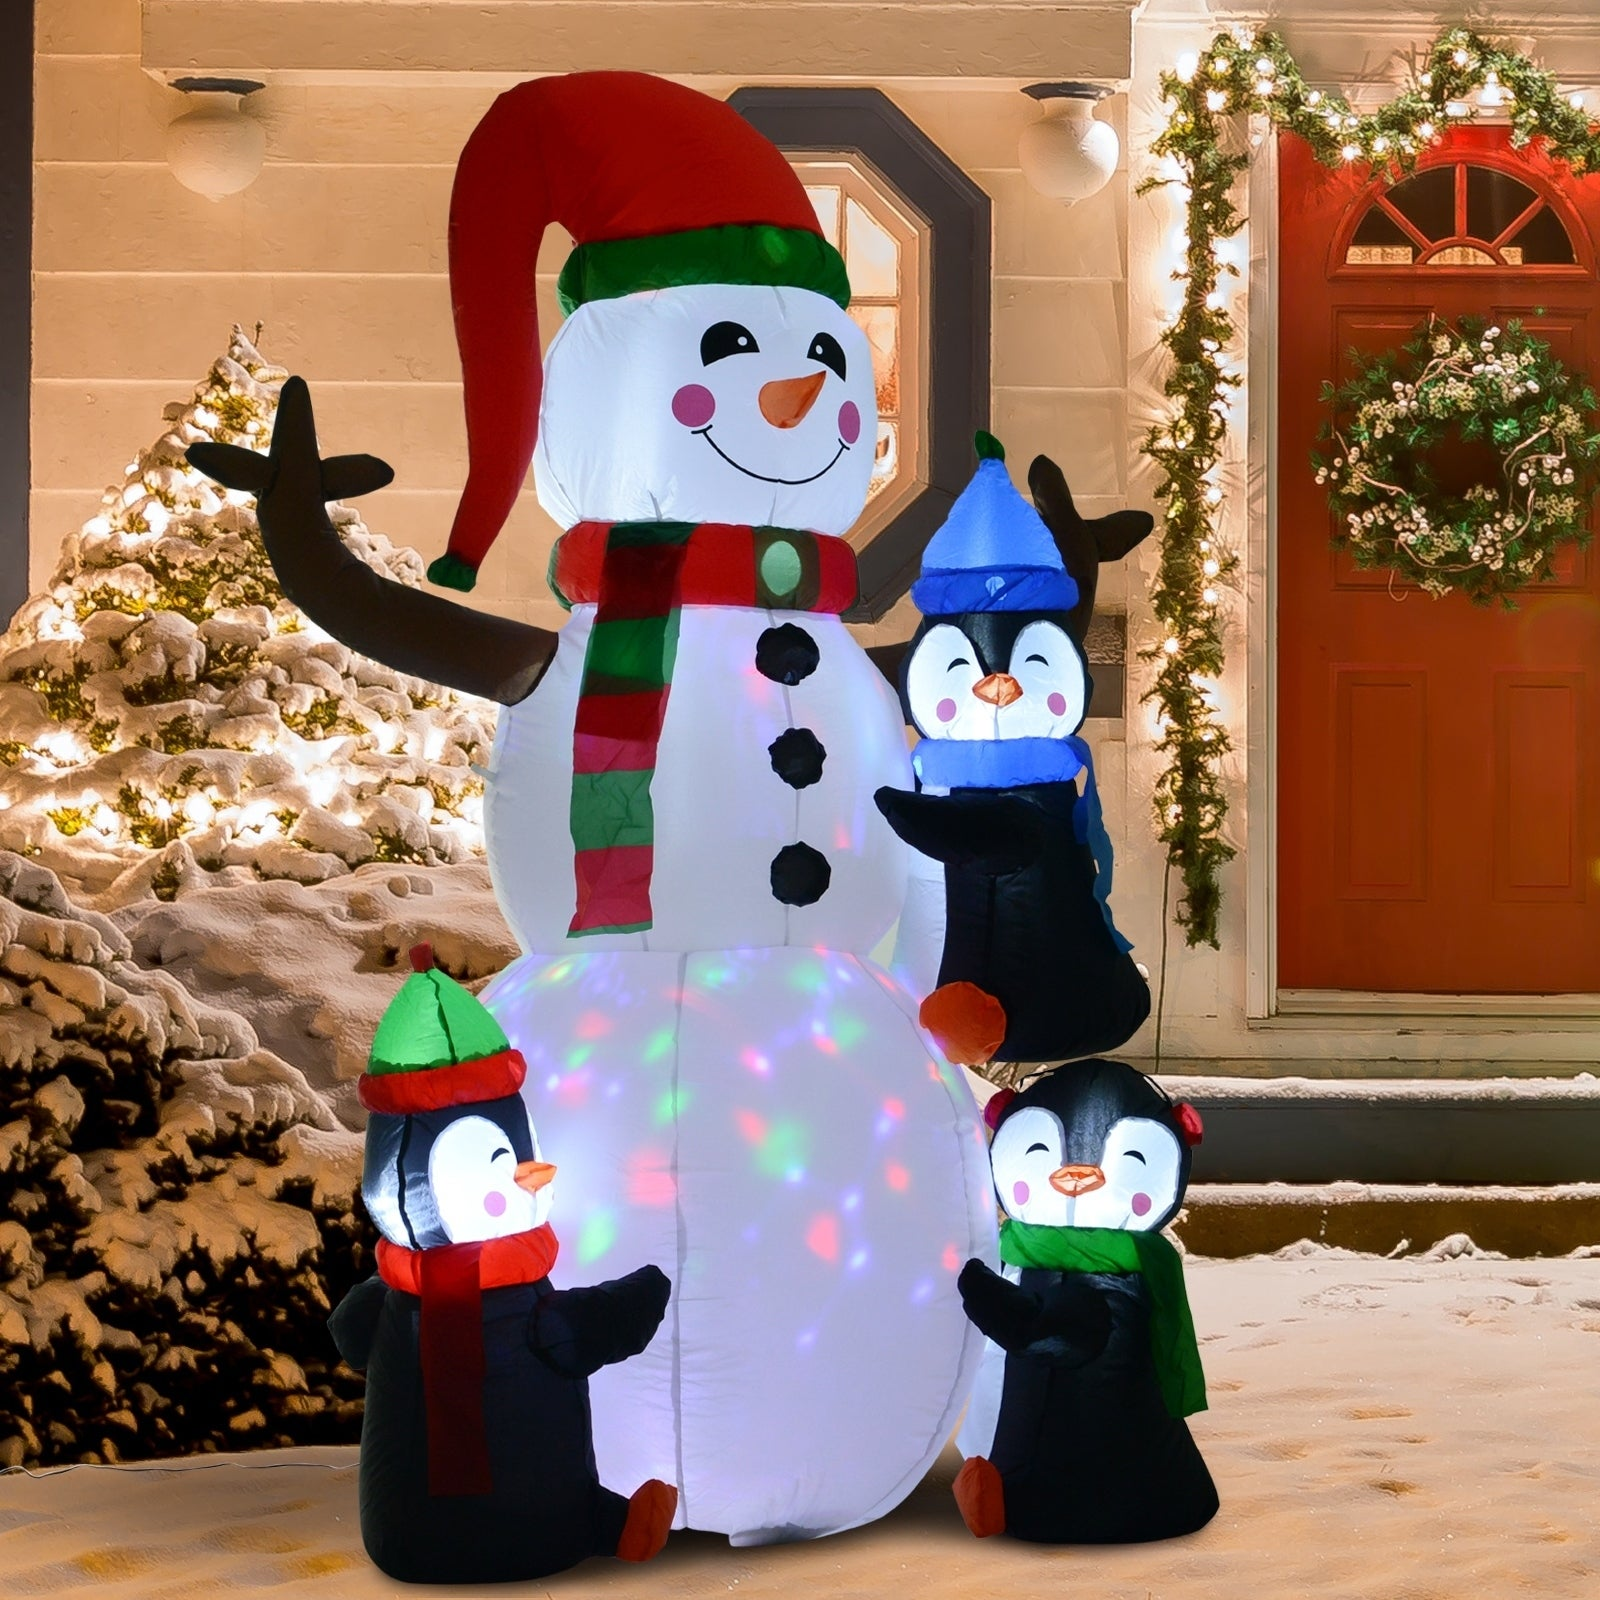 Hom 6 Christmas Holiday Yard Inflatable Outdoor Light Up LED Airblown Xmas Decoration 3 Penguins Building Snowman